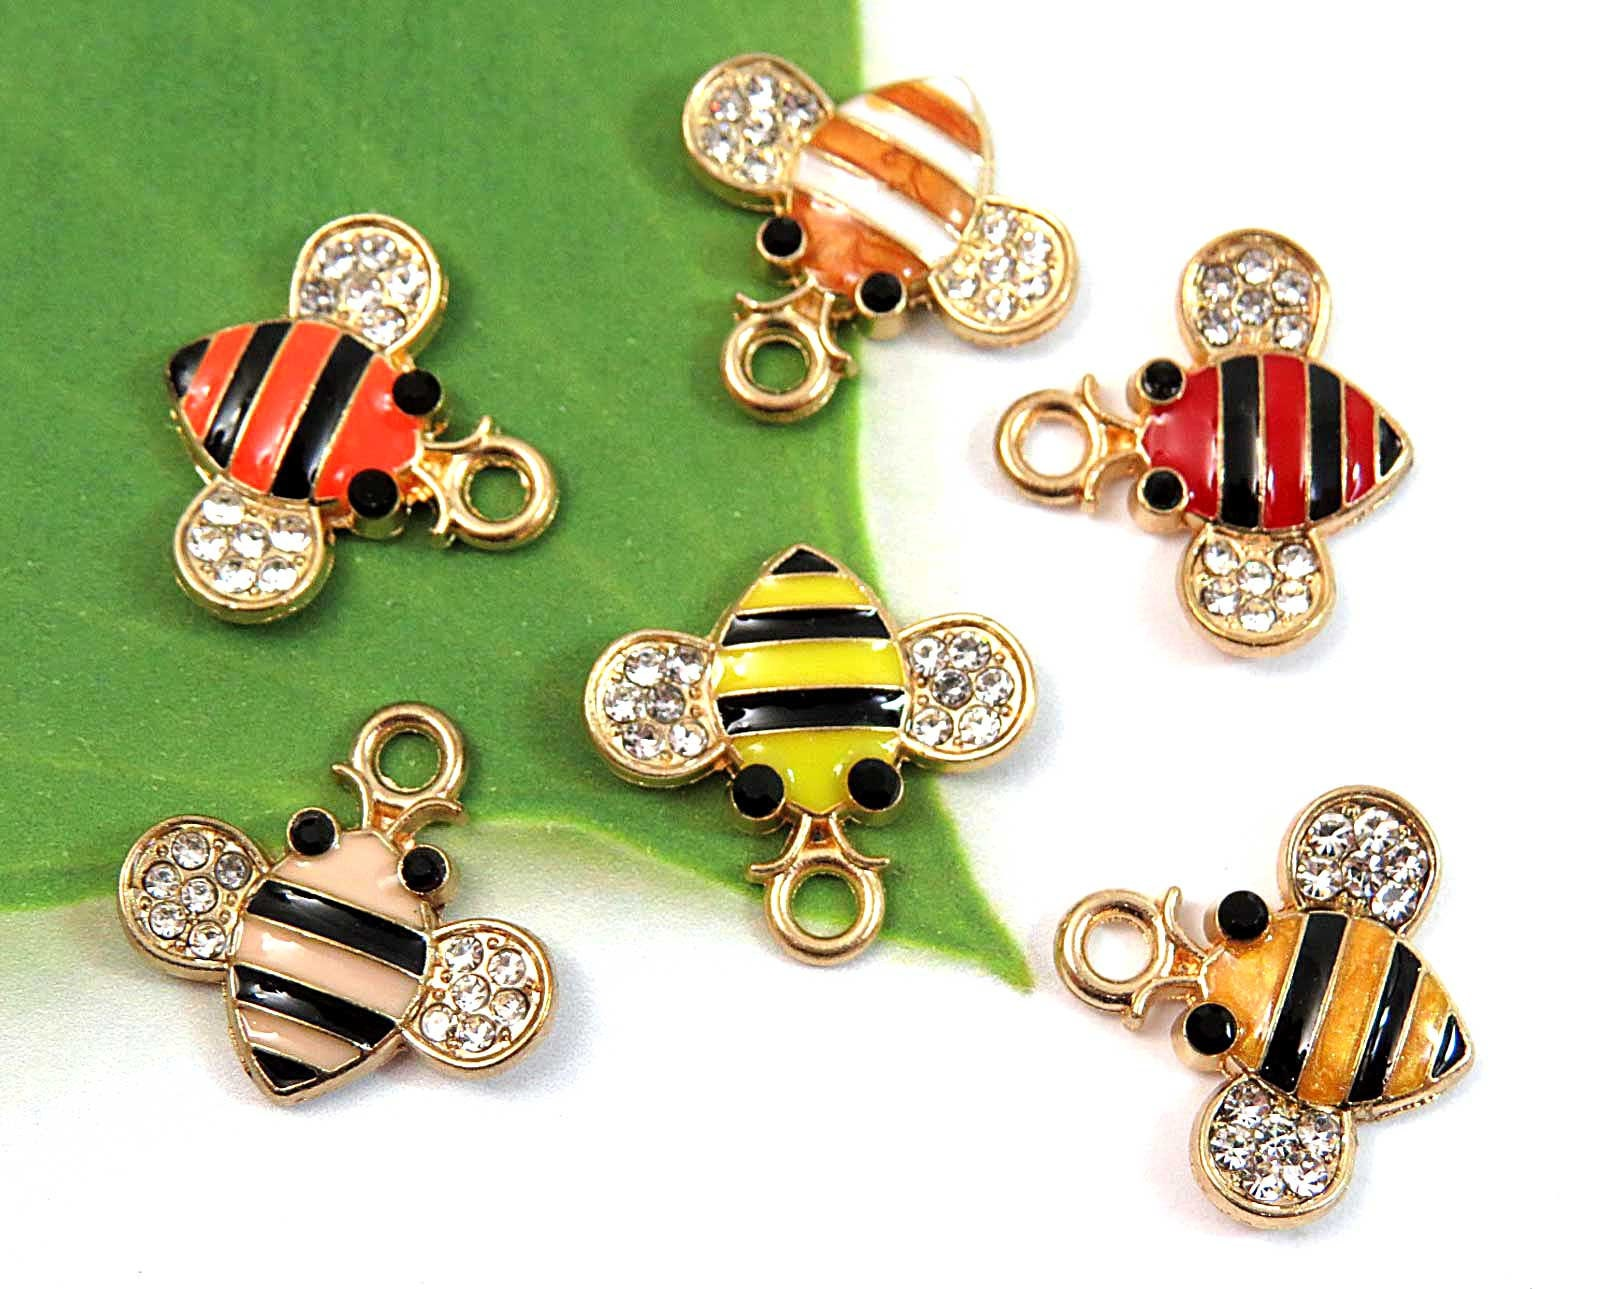 2 x Gold Plated Rhinestone Enamel 3d Bumble Bee Pendant Charms 17mm